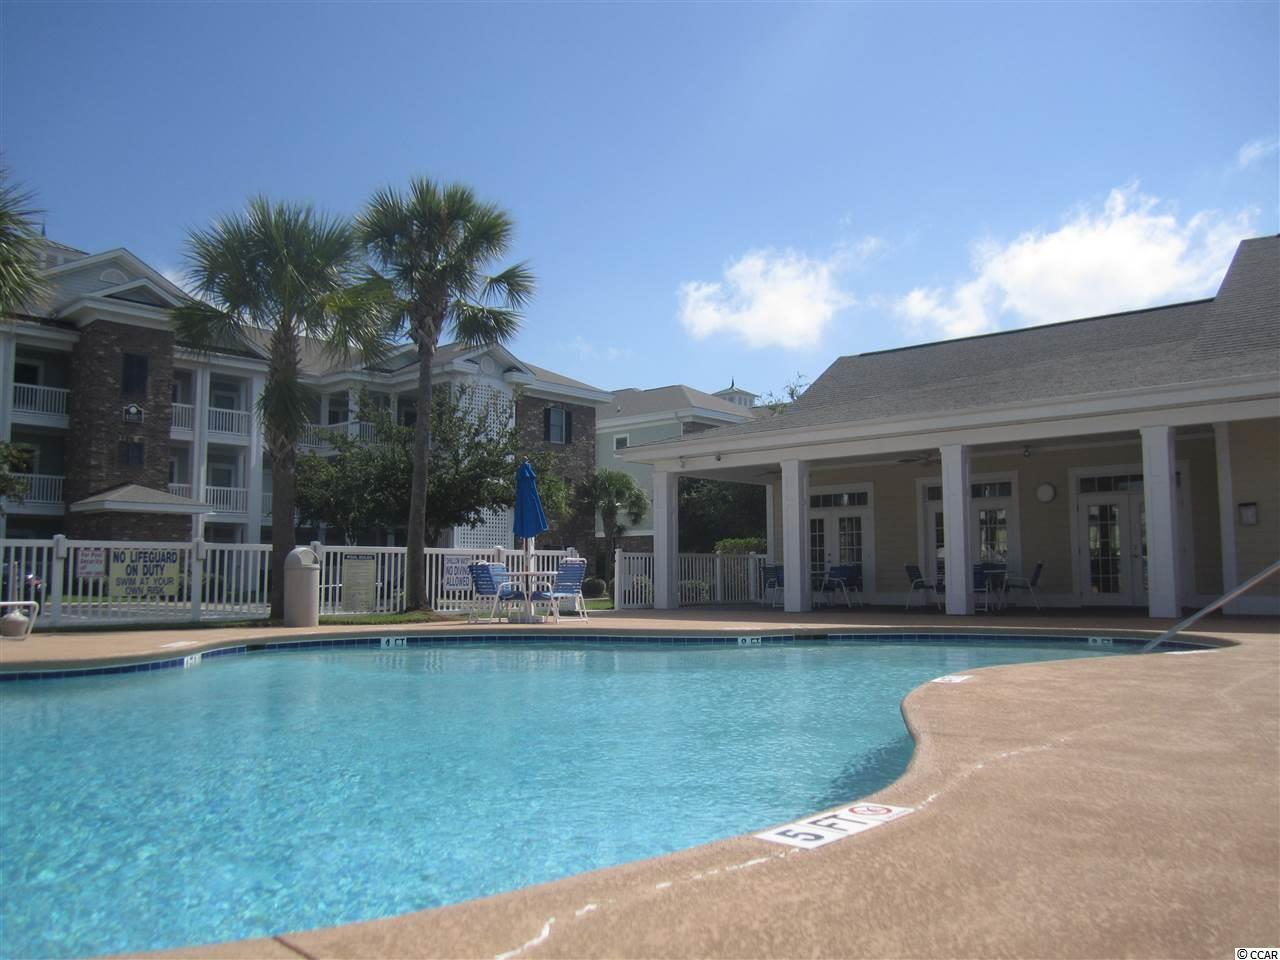 2 bedroom condo at 4829 LUSTER LEAF CIRCLE 202